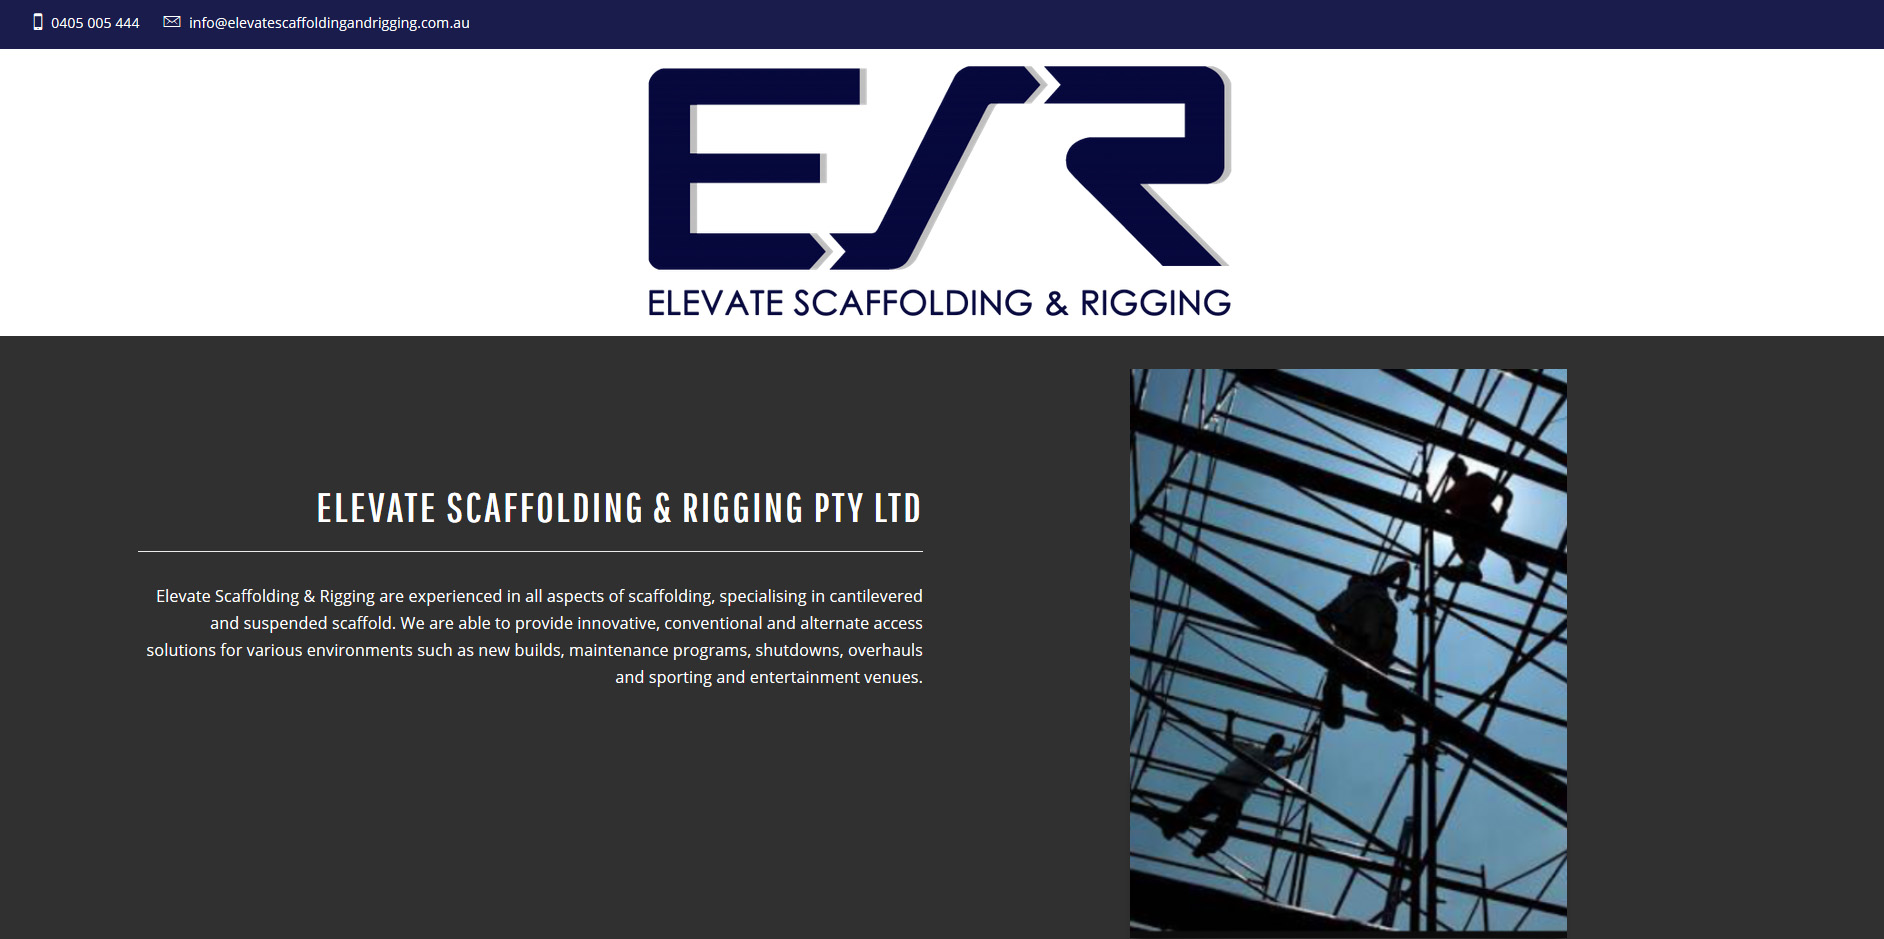 Tara Whitie latest website design for Elevate Scaffolding and Rigging